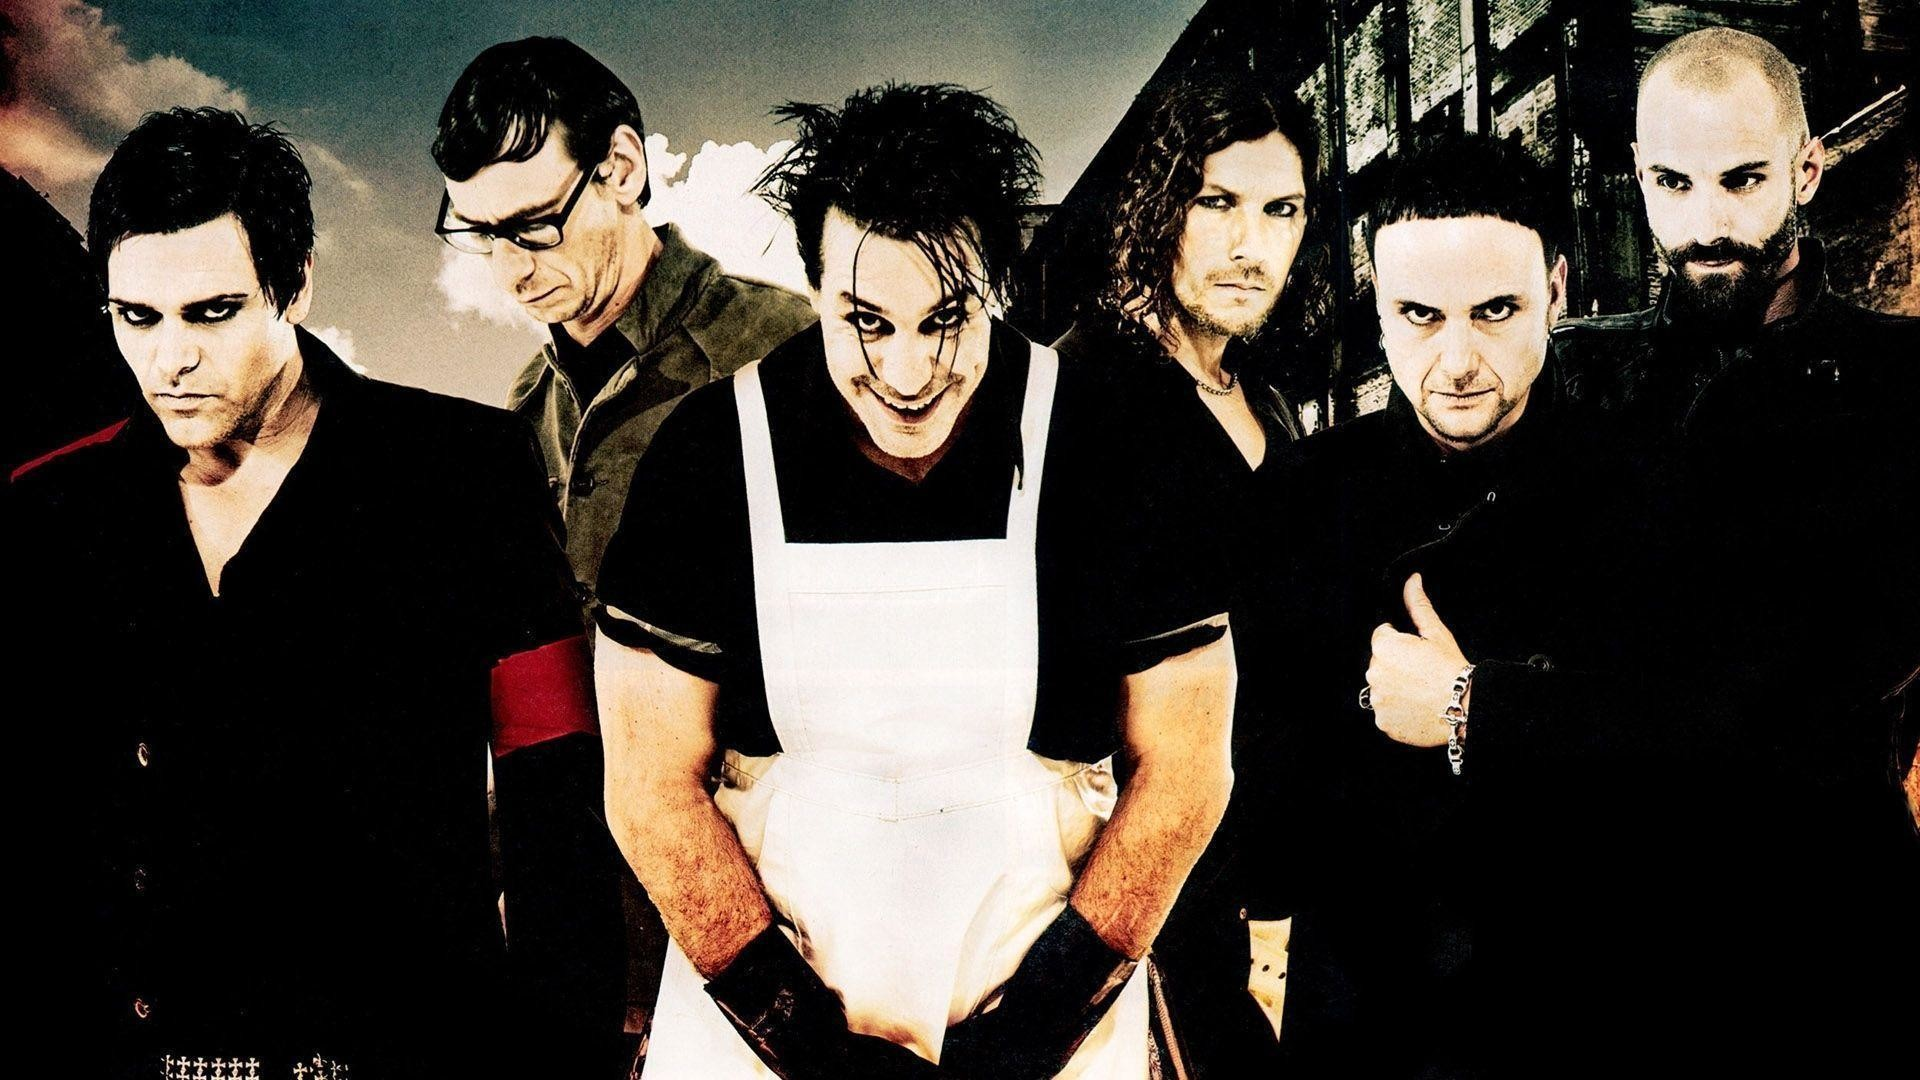 1920x1080 Rammstein | Wallpapers HD free Download